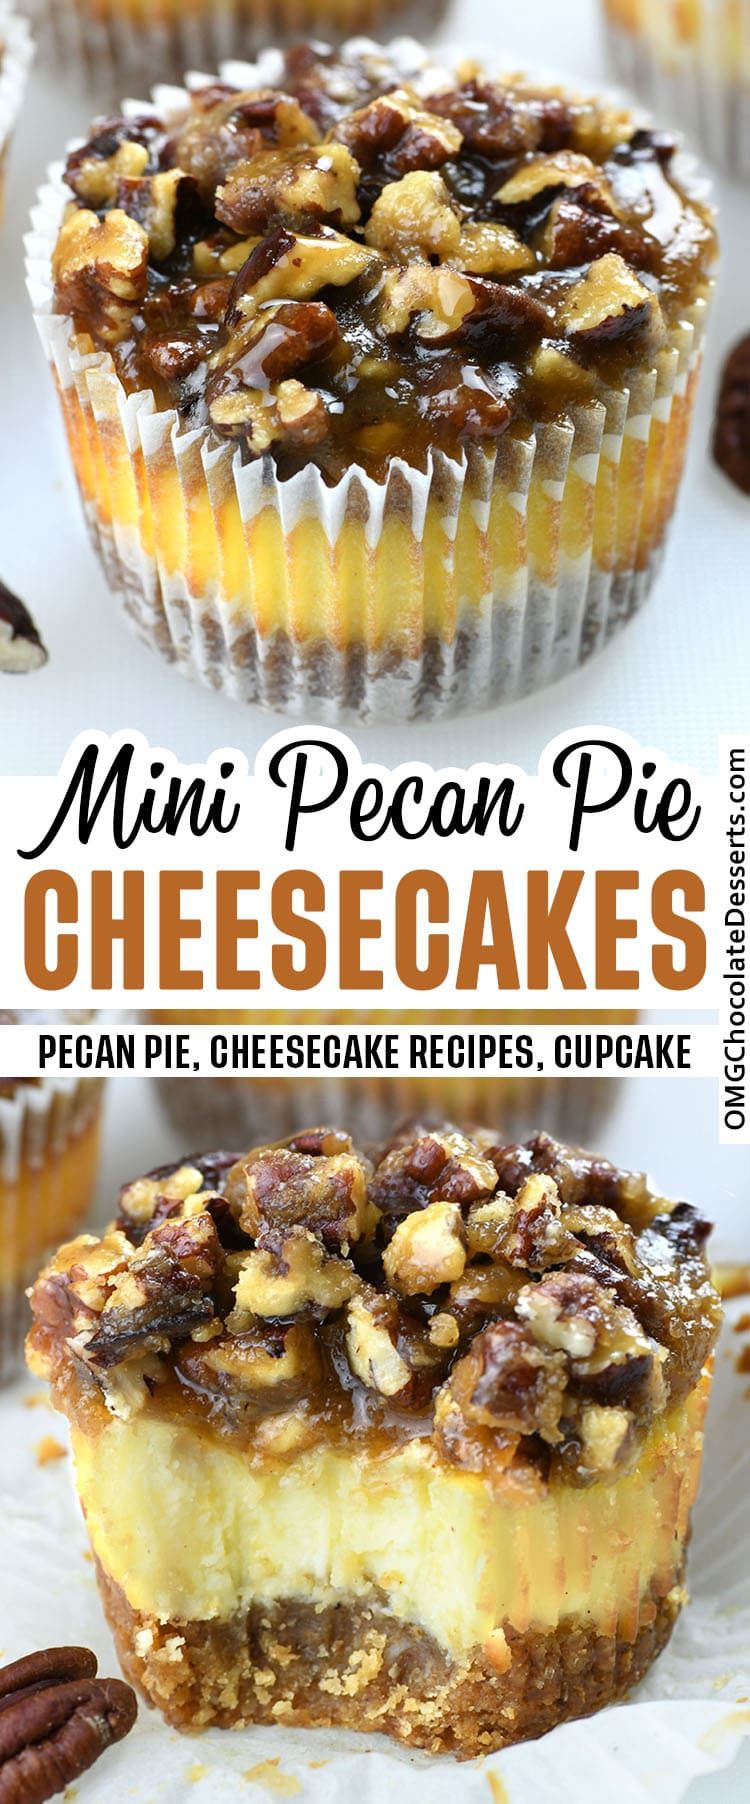 Mini Pecan Pie Cheesecakes combines two of the best holiday desserts-cheesecake and pecan pie and pack them into one amazing treat